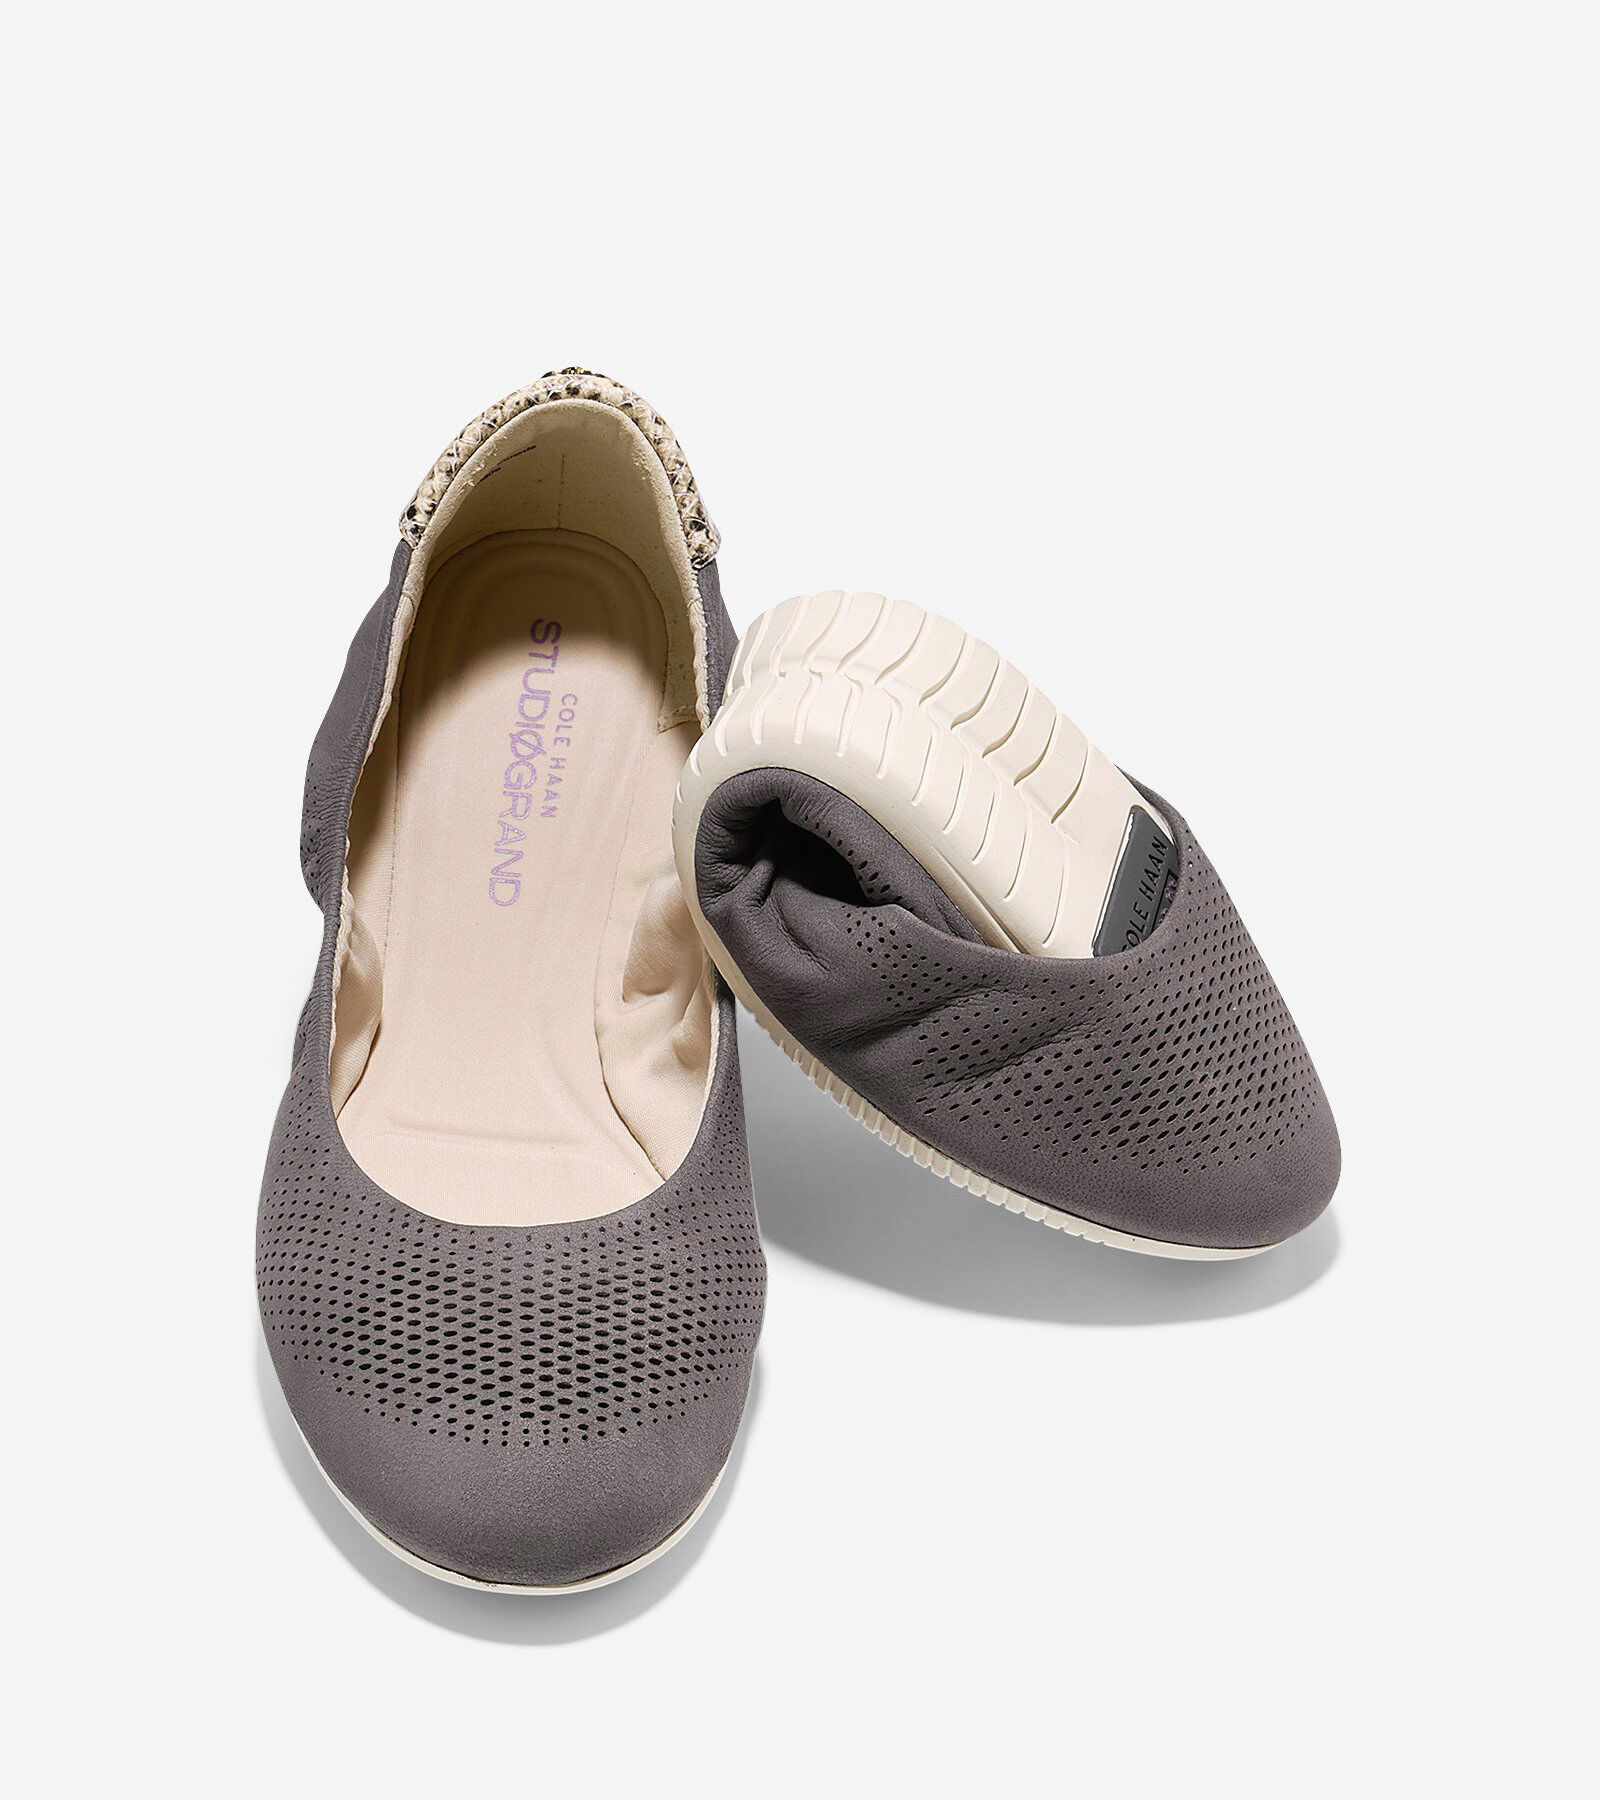 Cole Haan StudioGrand Ballet Leather Flat FXNRMic